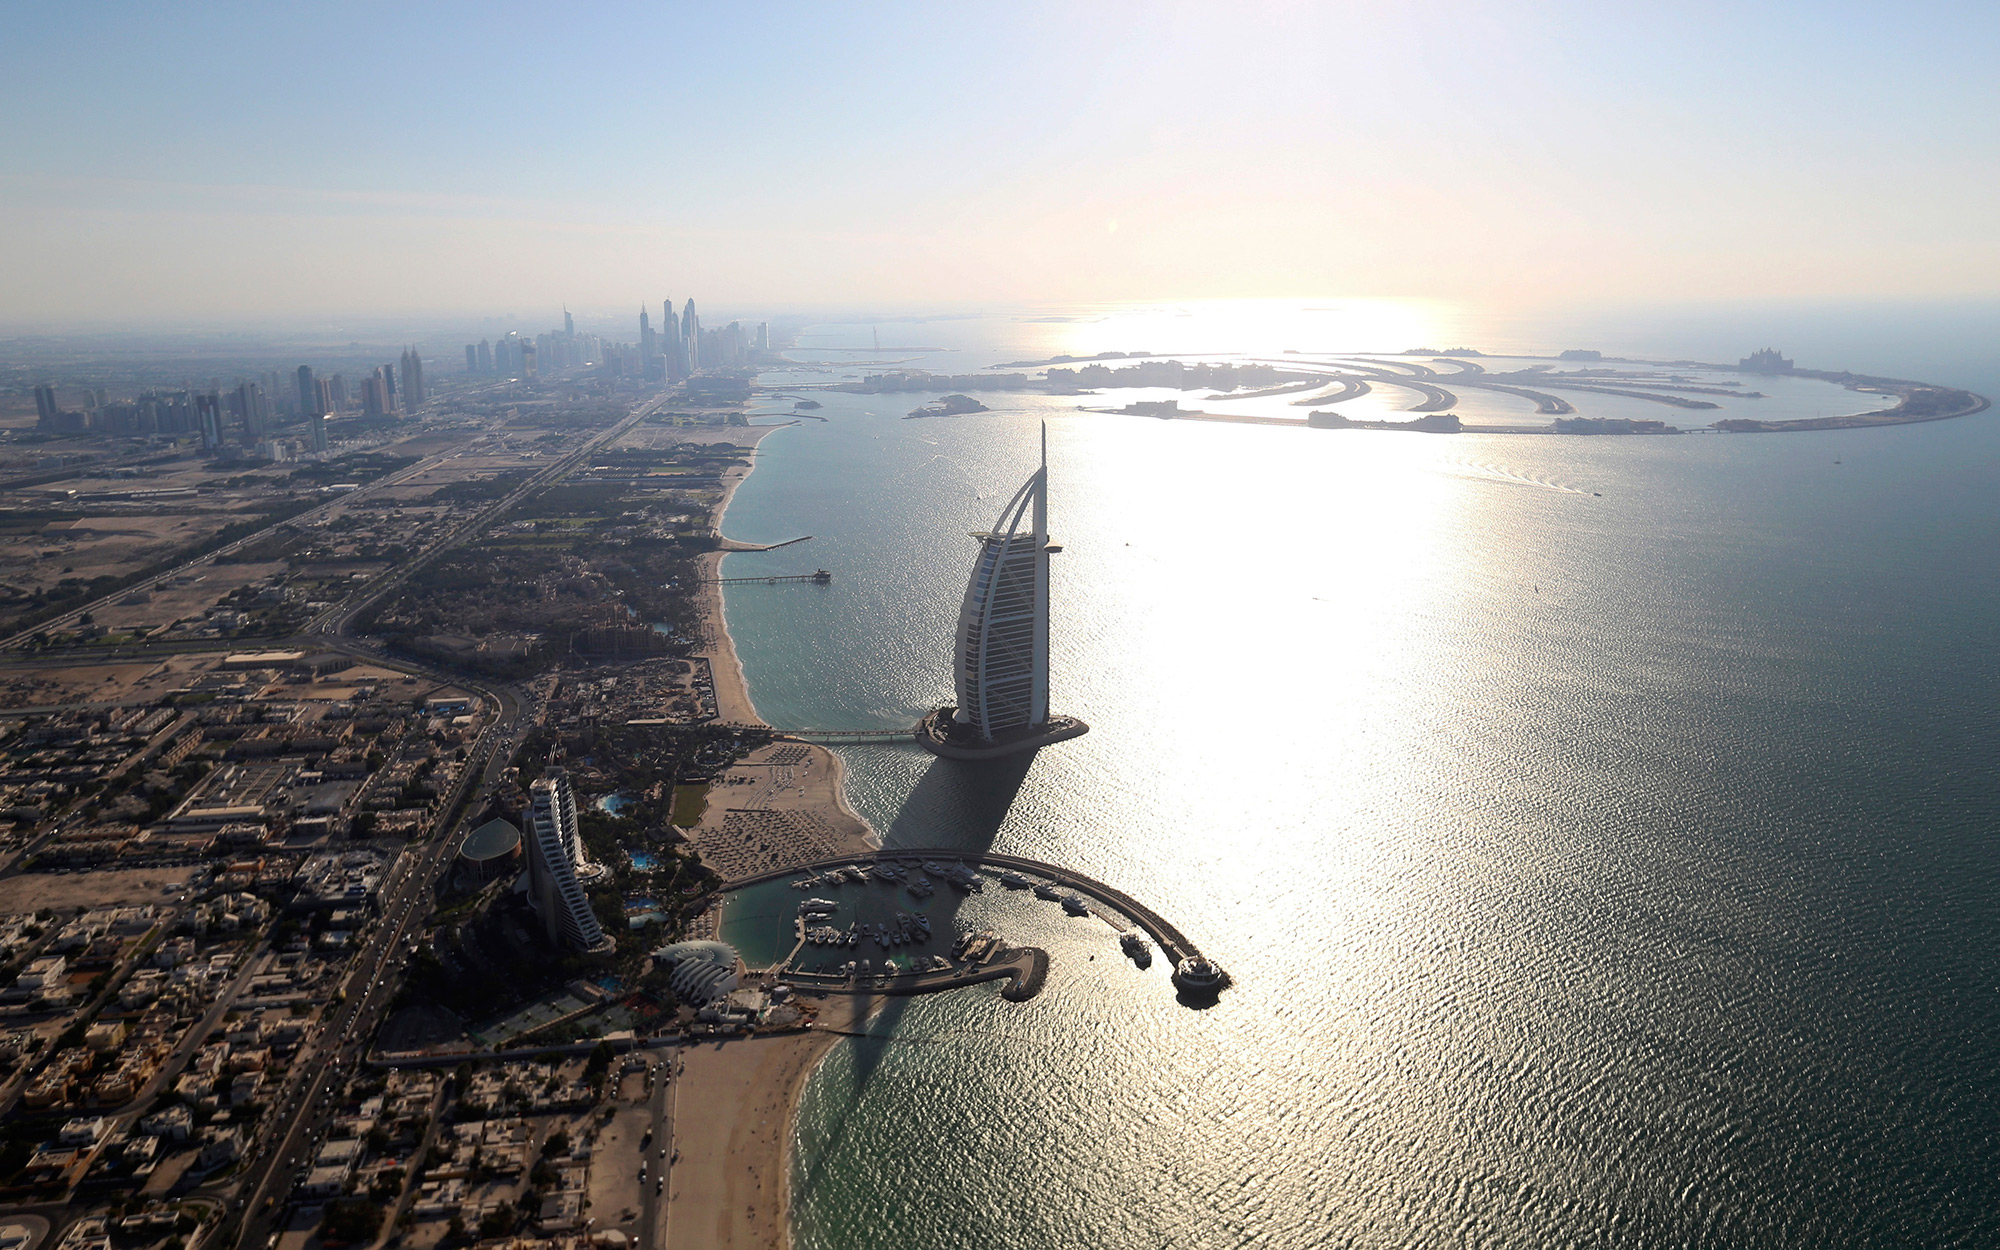 City skyscrapers stand on the skyline beyond the Burj Al Arab luxury hotel, center, Jumeirah Beach hotel, center left, and the Jumeirah Palm archipelago, top right, on the shoreline of Dubai, United Arab Emirates, on Tuesday, Nov. 11, 2014. Declining curr